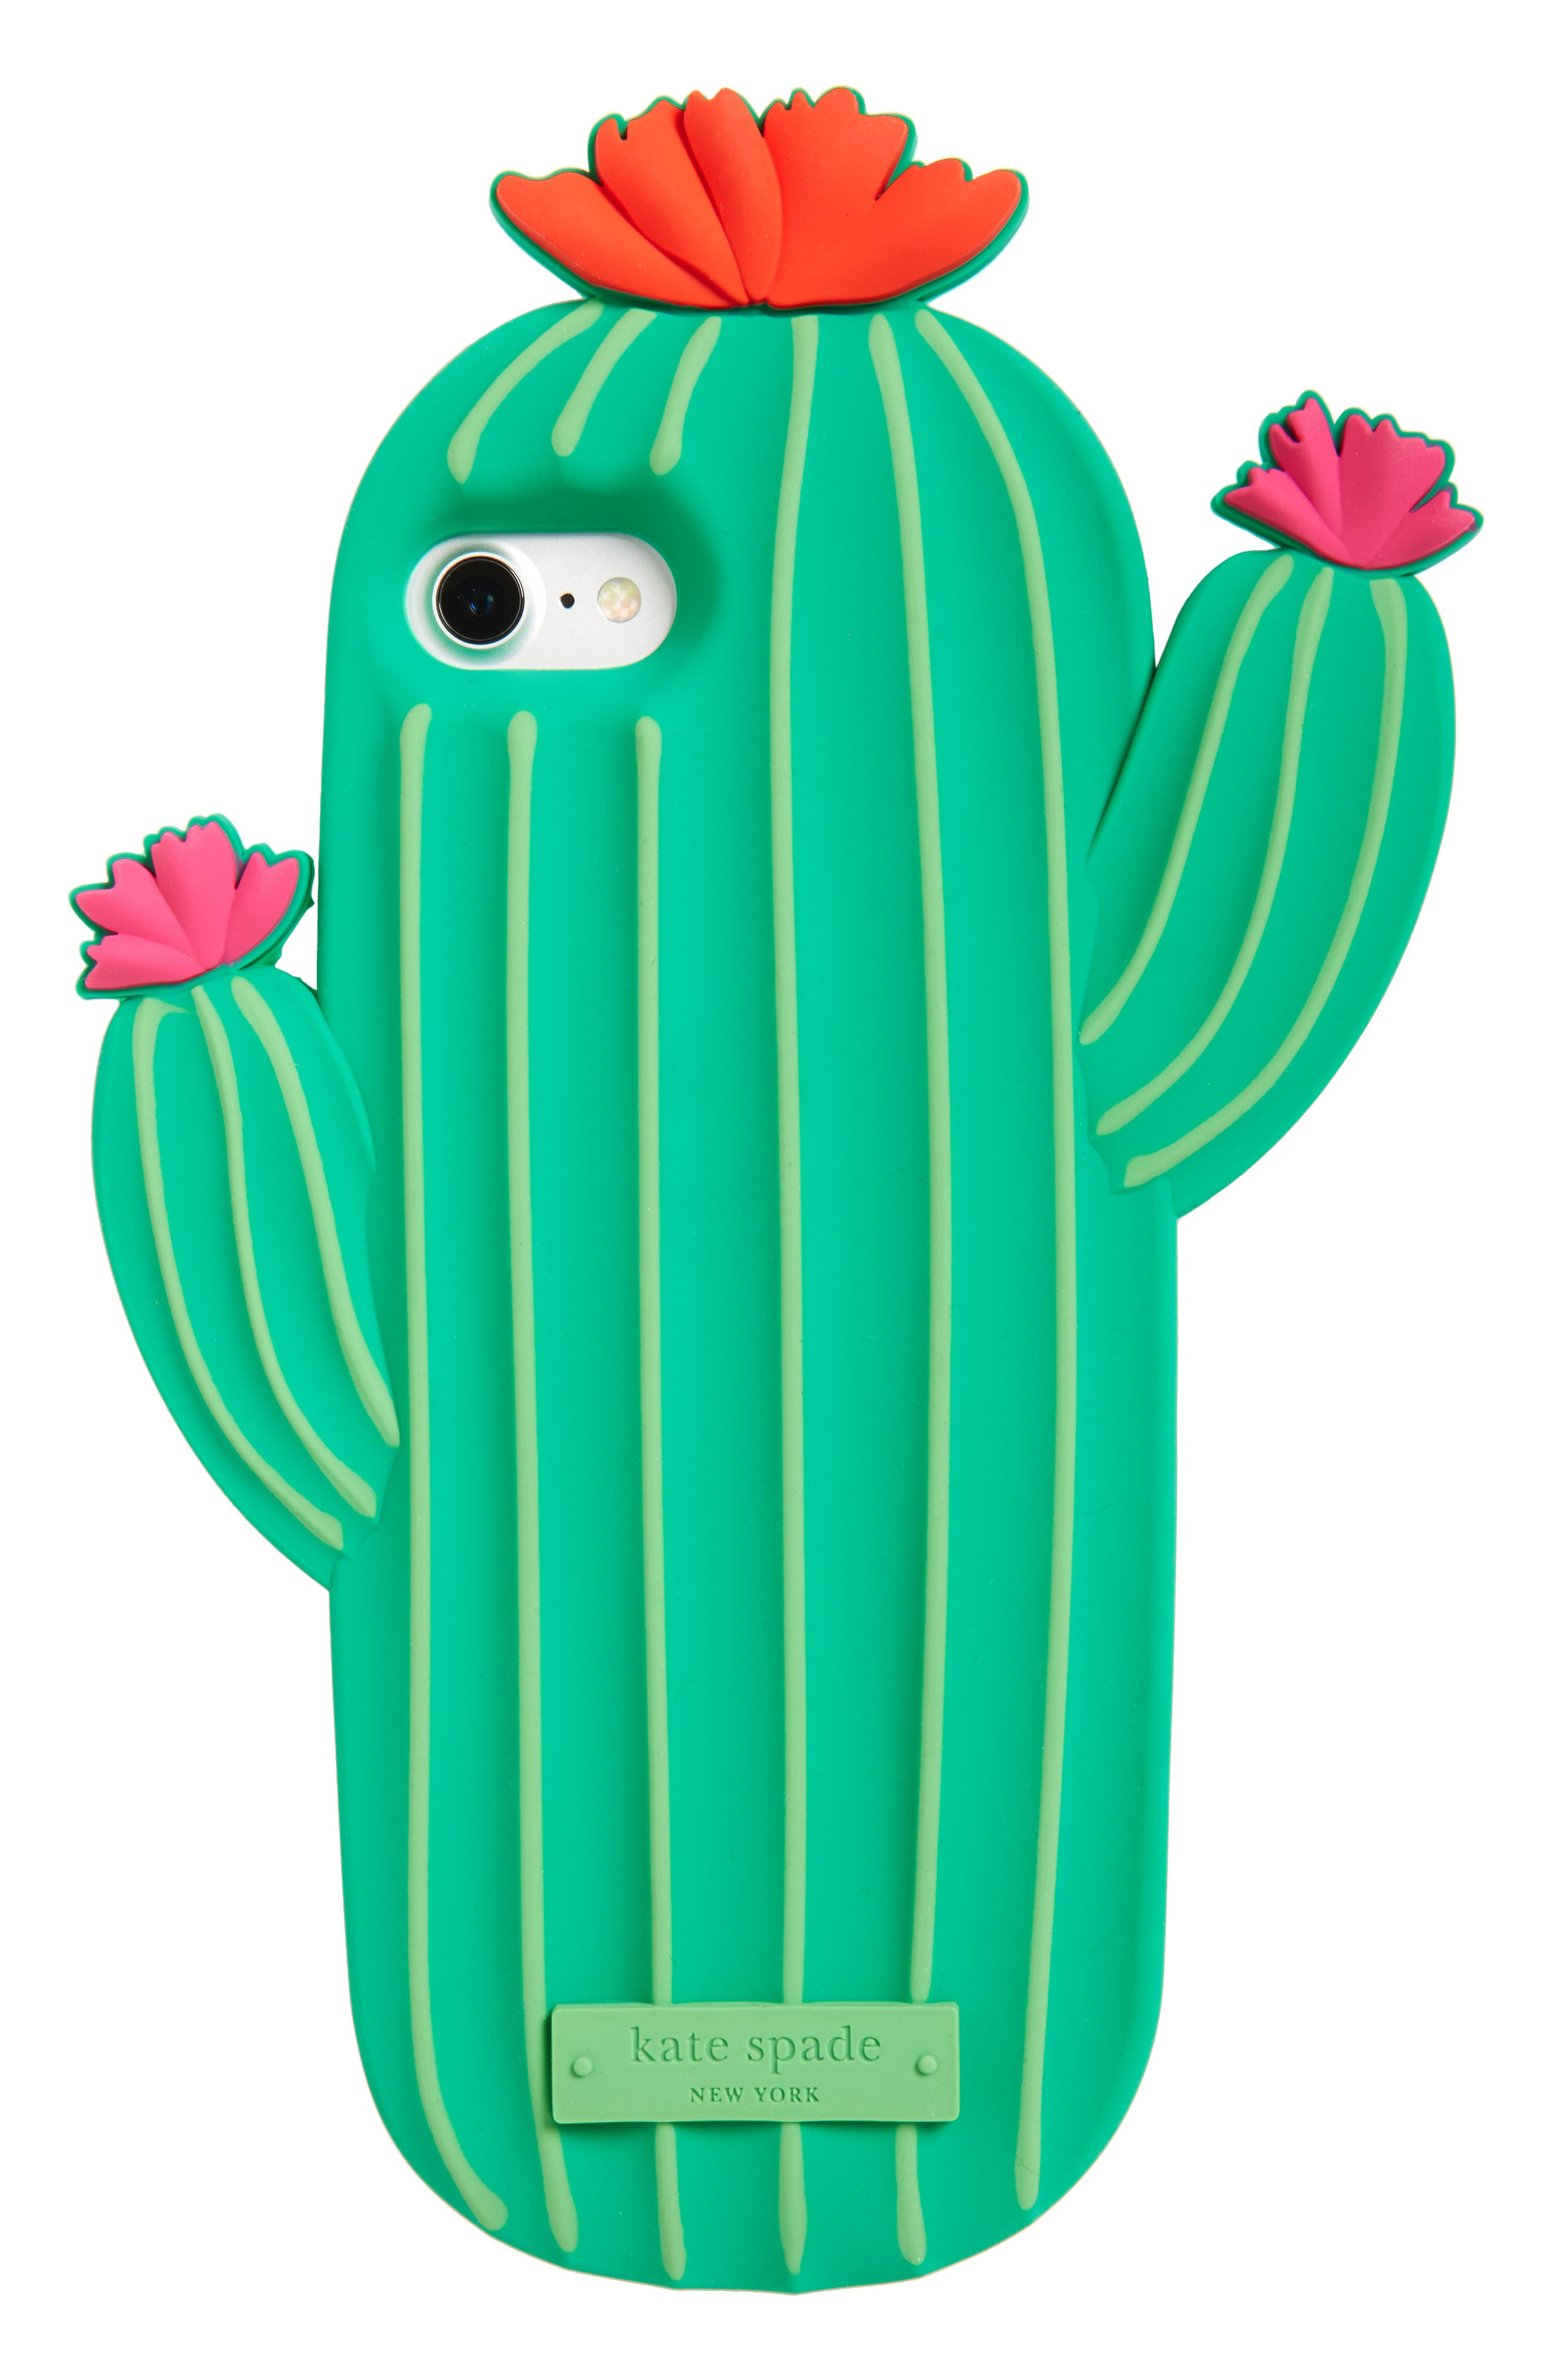 kate spade new york cactus iPhone 7 case